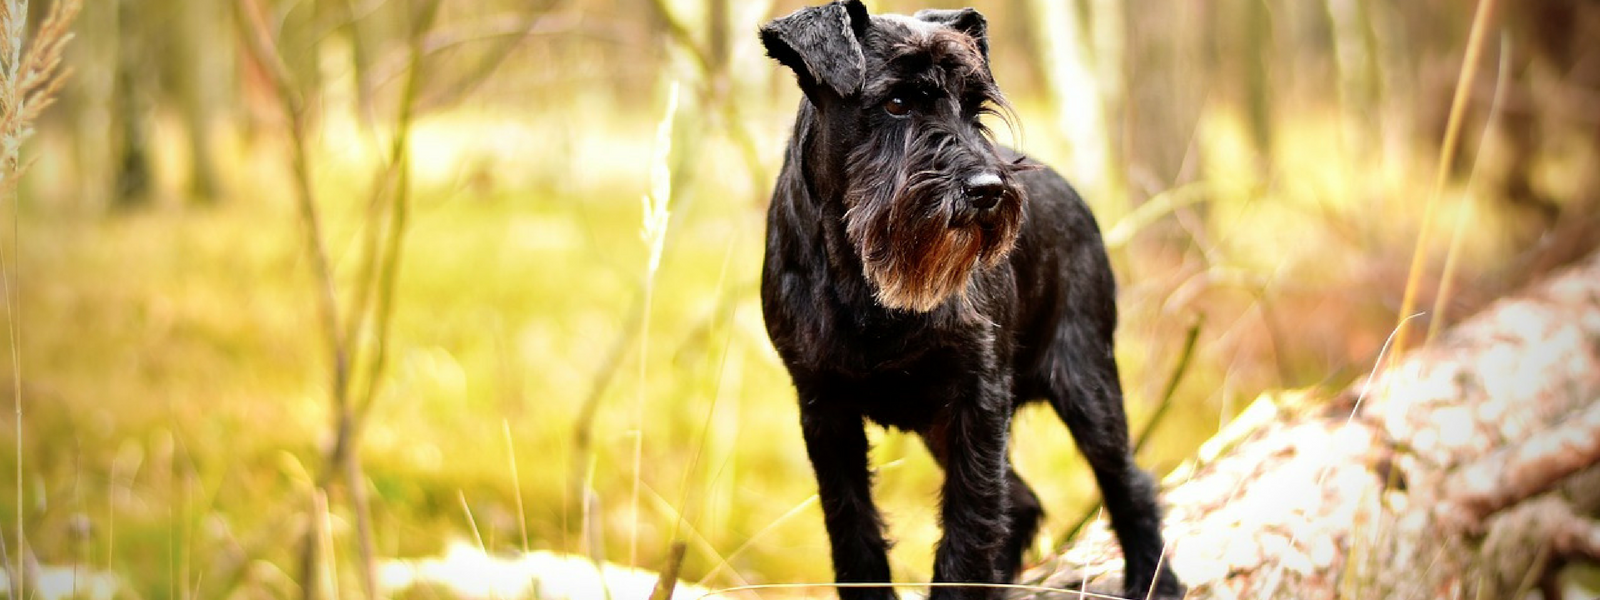 Top 20 Most Common Dog Names